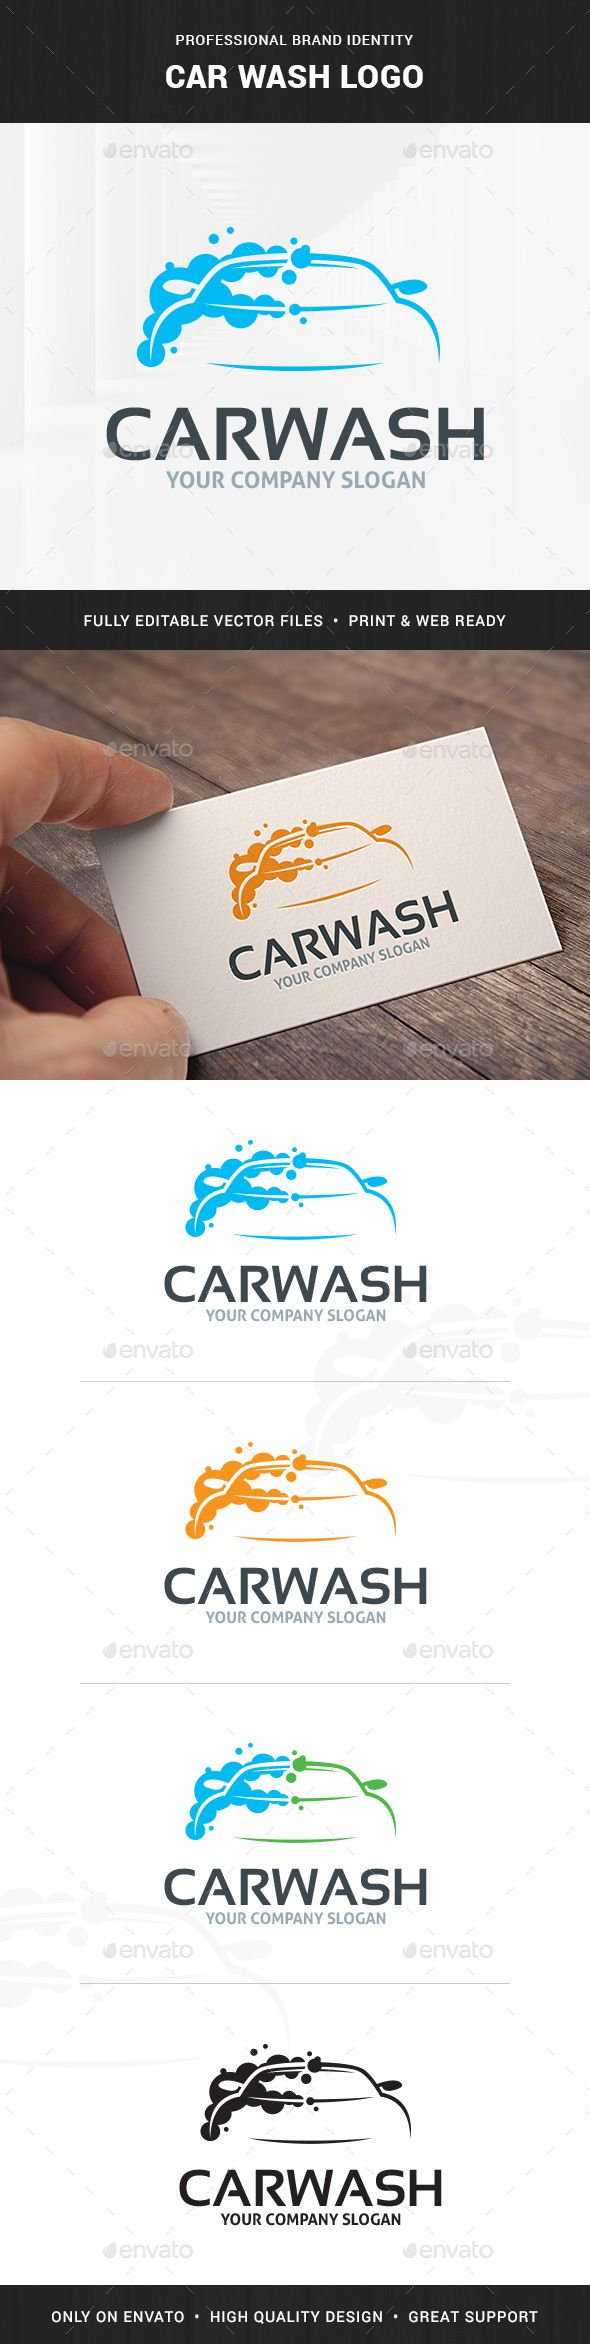 Car Wash  - Logo Design Template Vector #logotype Download it here: http://graphicriver.net/item/car-wash-logo-template/6303872?s_rank=727?ref=nexion